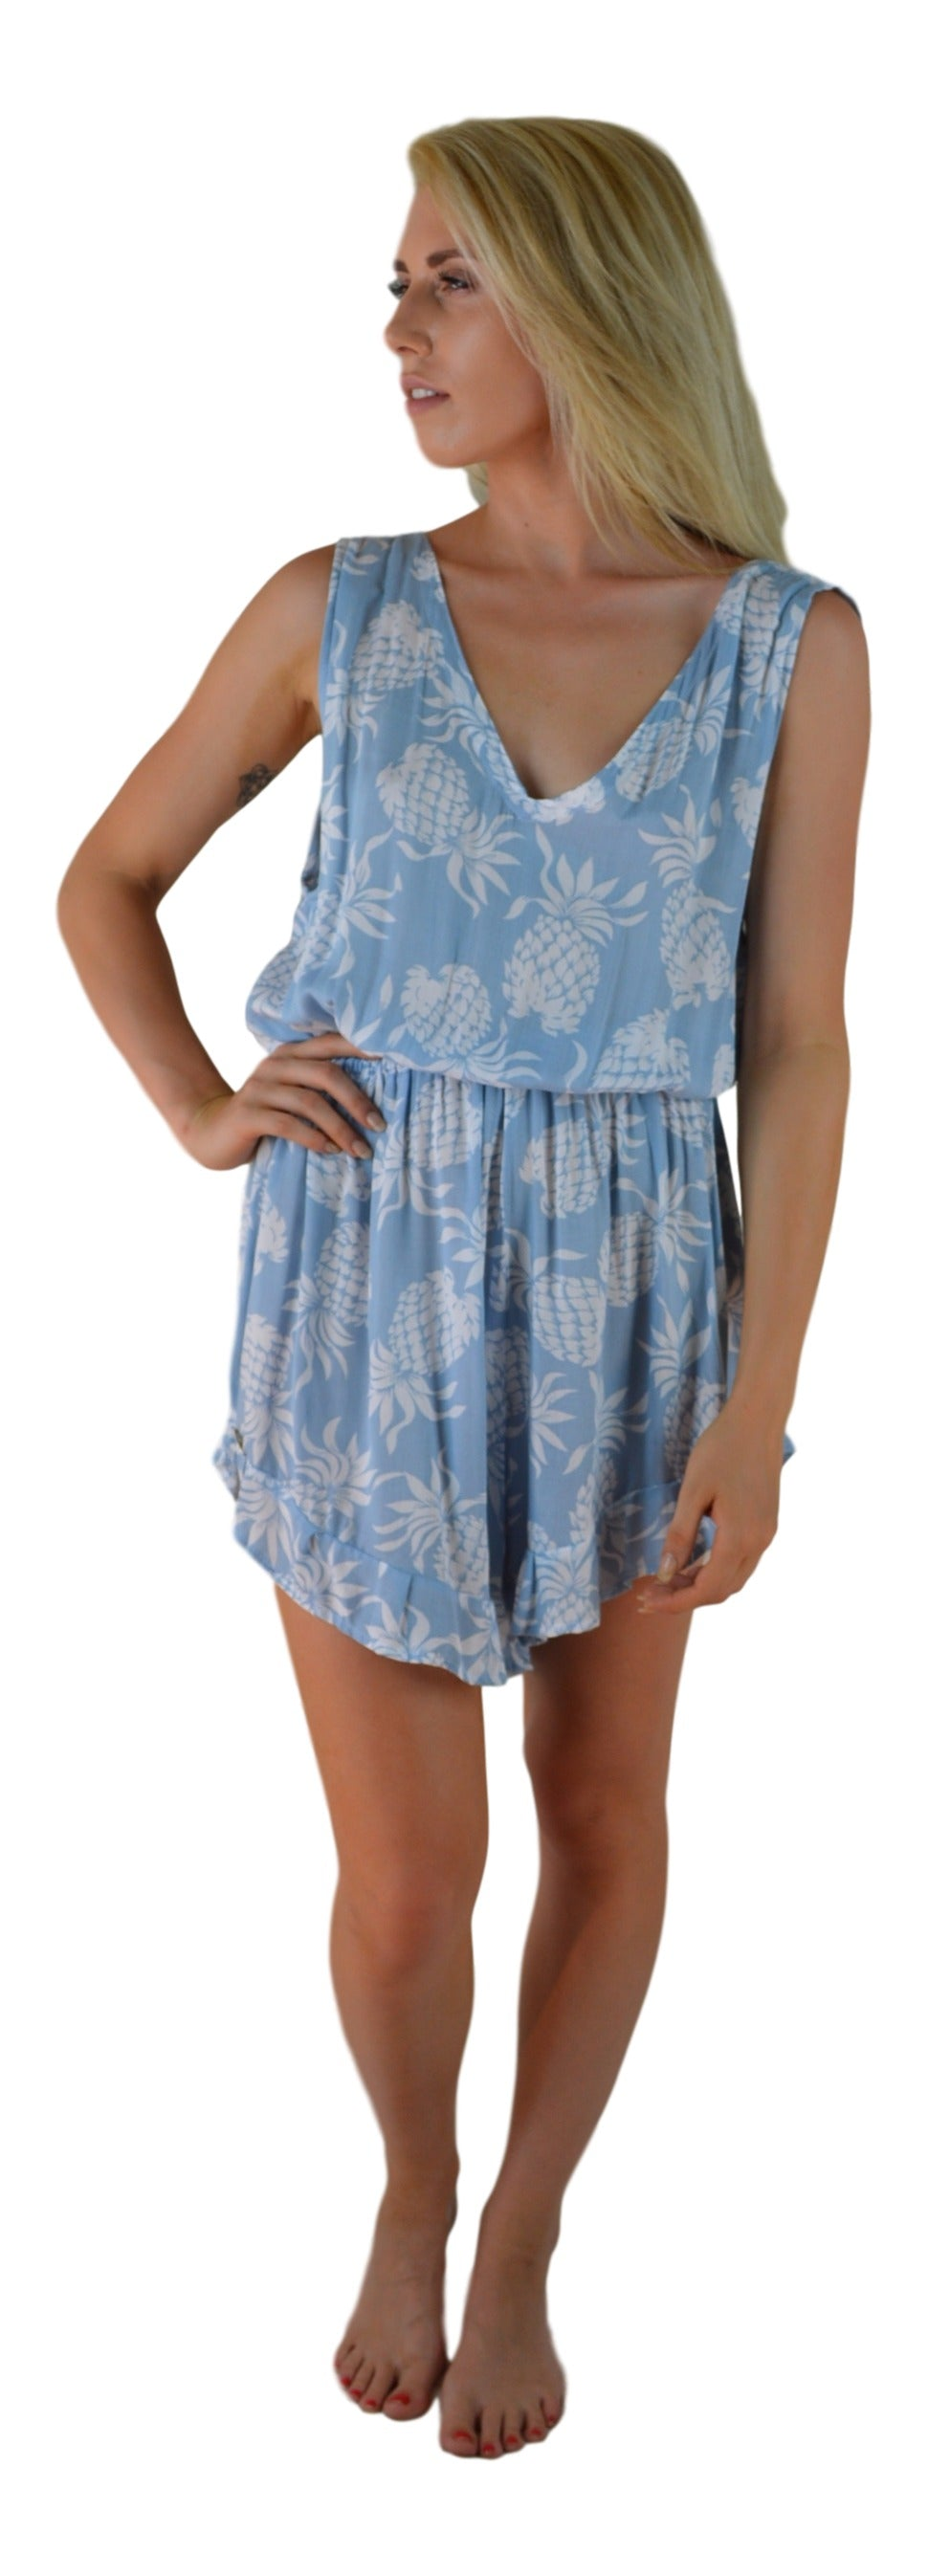 Secret Beach - Kona Romper - Pineapple - Ballad Blue